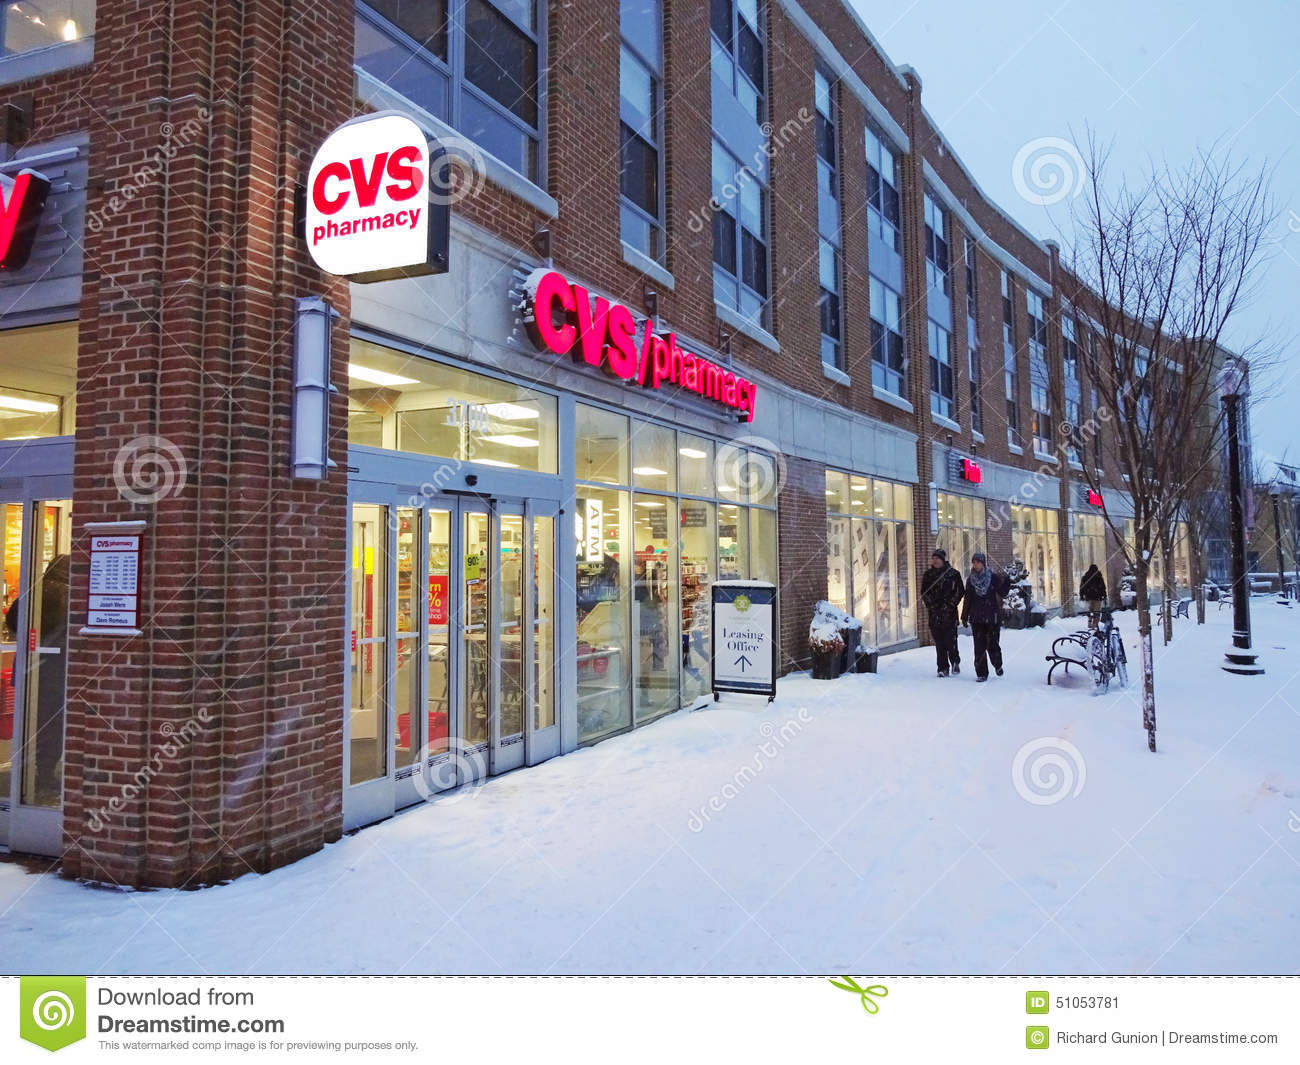 cvs pharmacy is open today editorial photo image  cvs pharmacy is open today editorial photo